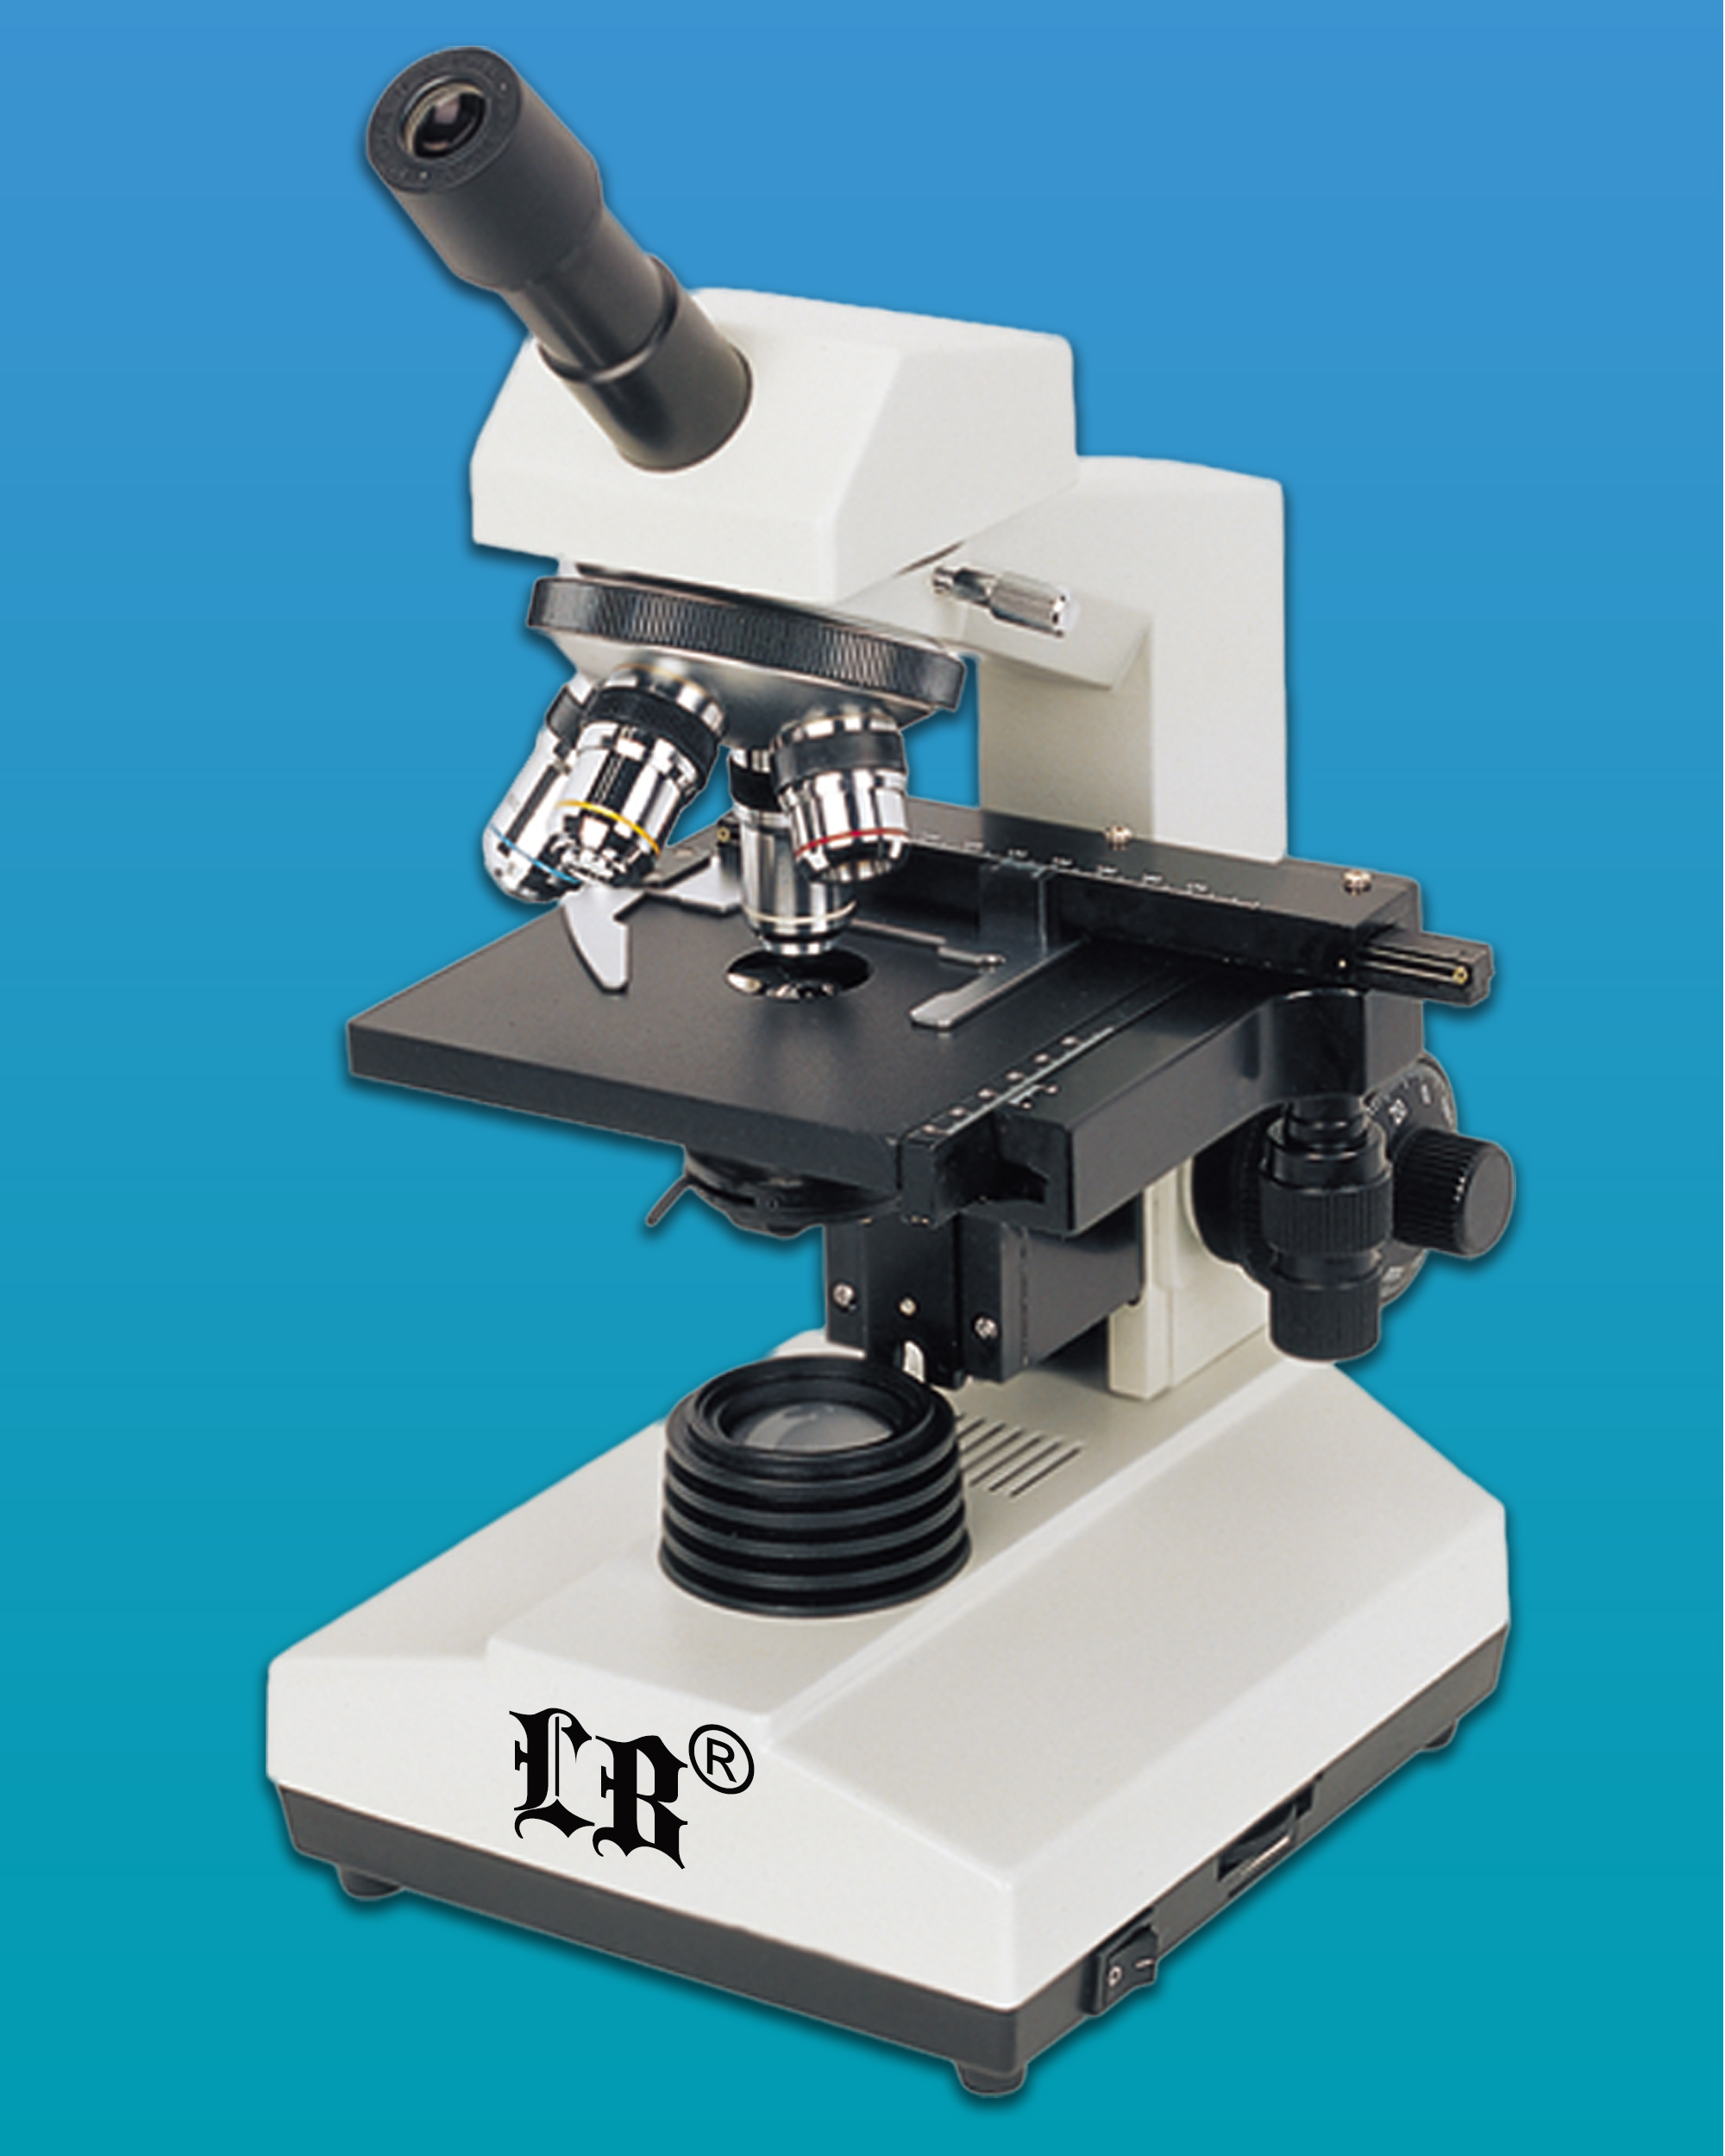 [LB-125] Monocular Biological Microscope